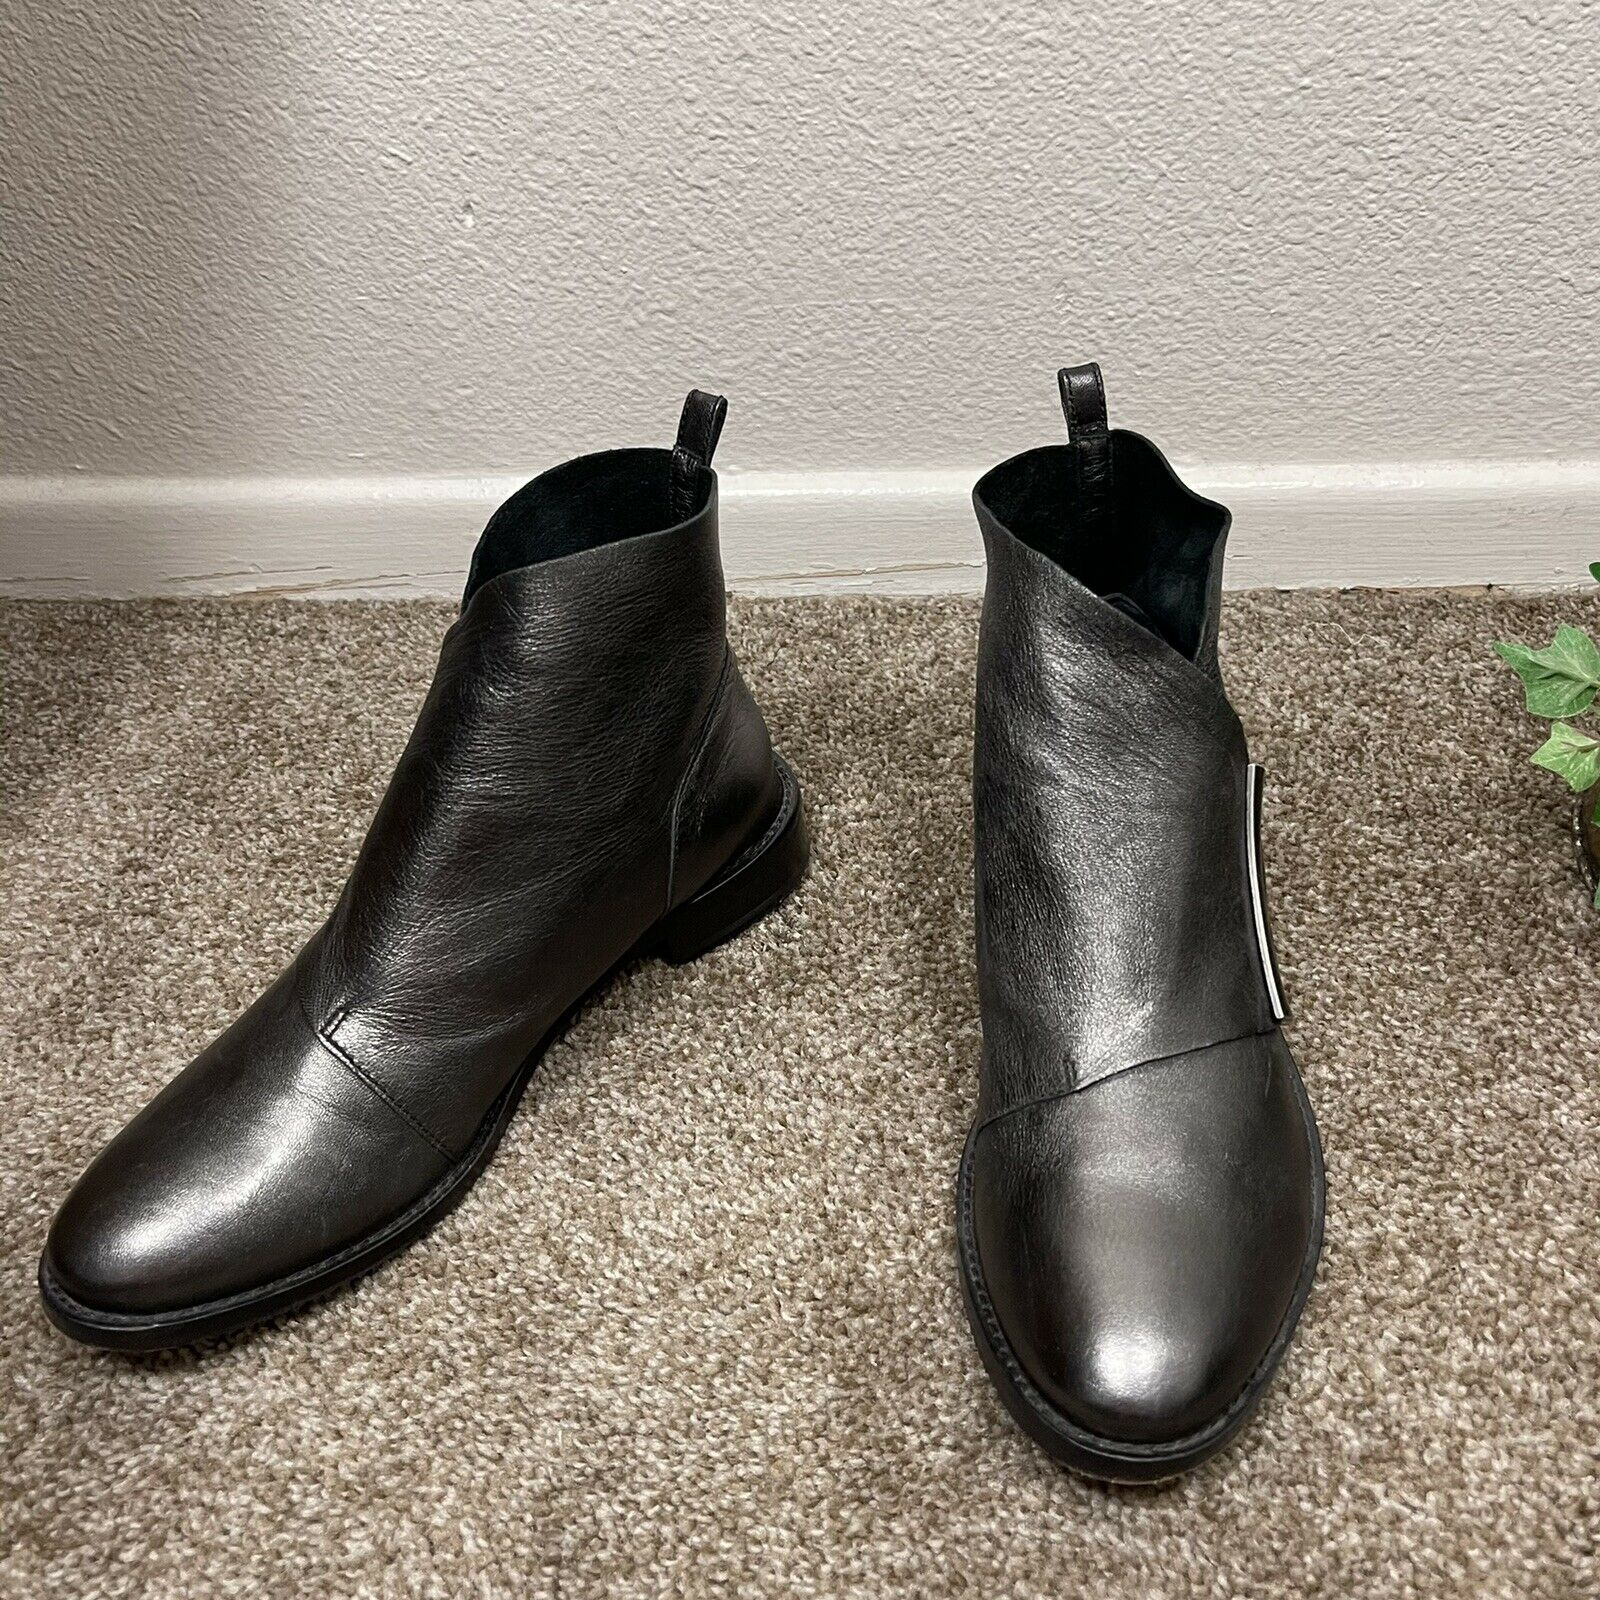 Johnston & Murphy Lola Pewter Leather Ankle Boots Booties Women's Size 6 M